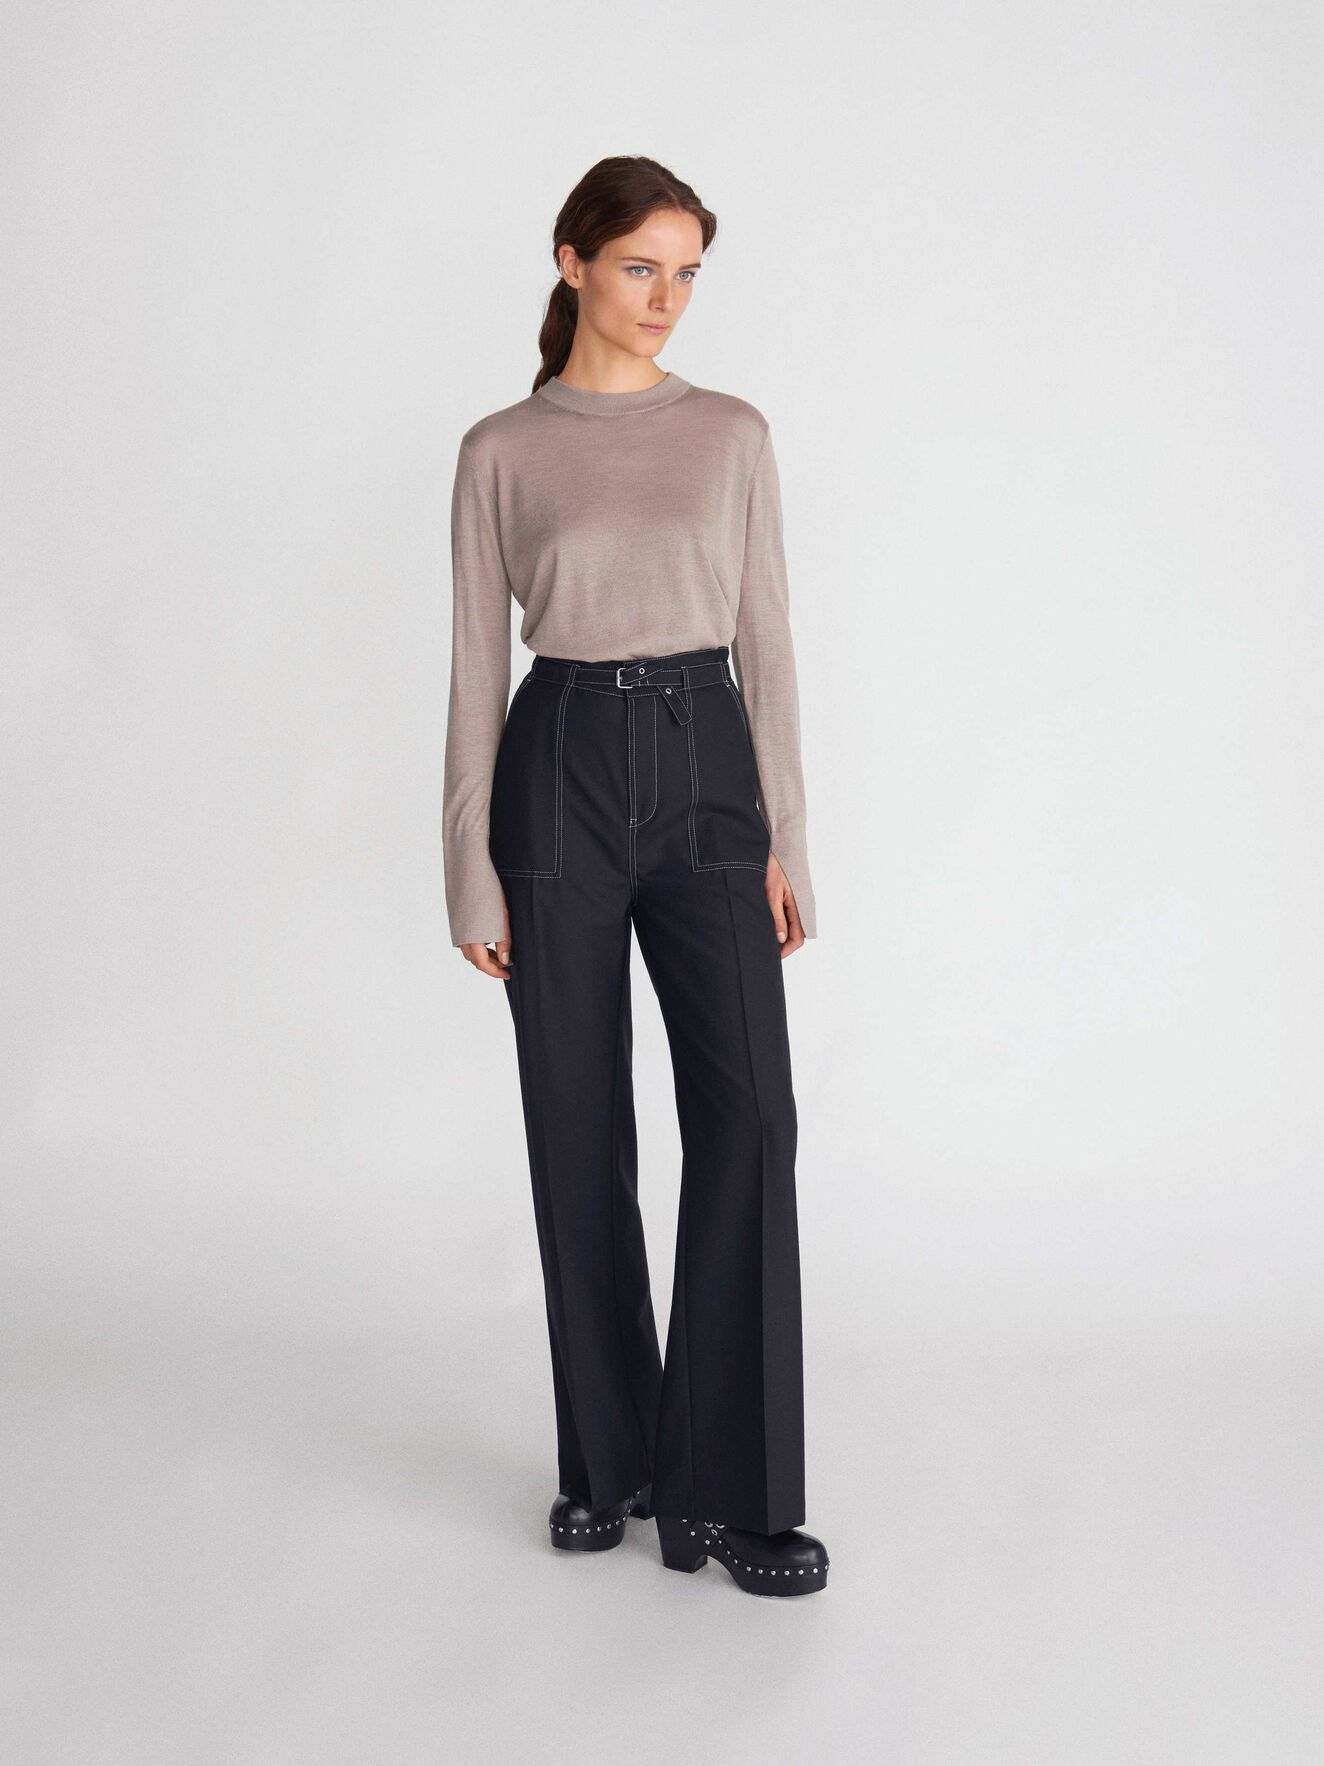 Nikki Trousers in Black from Tiger of Sweden